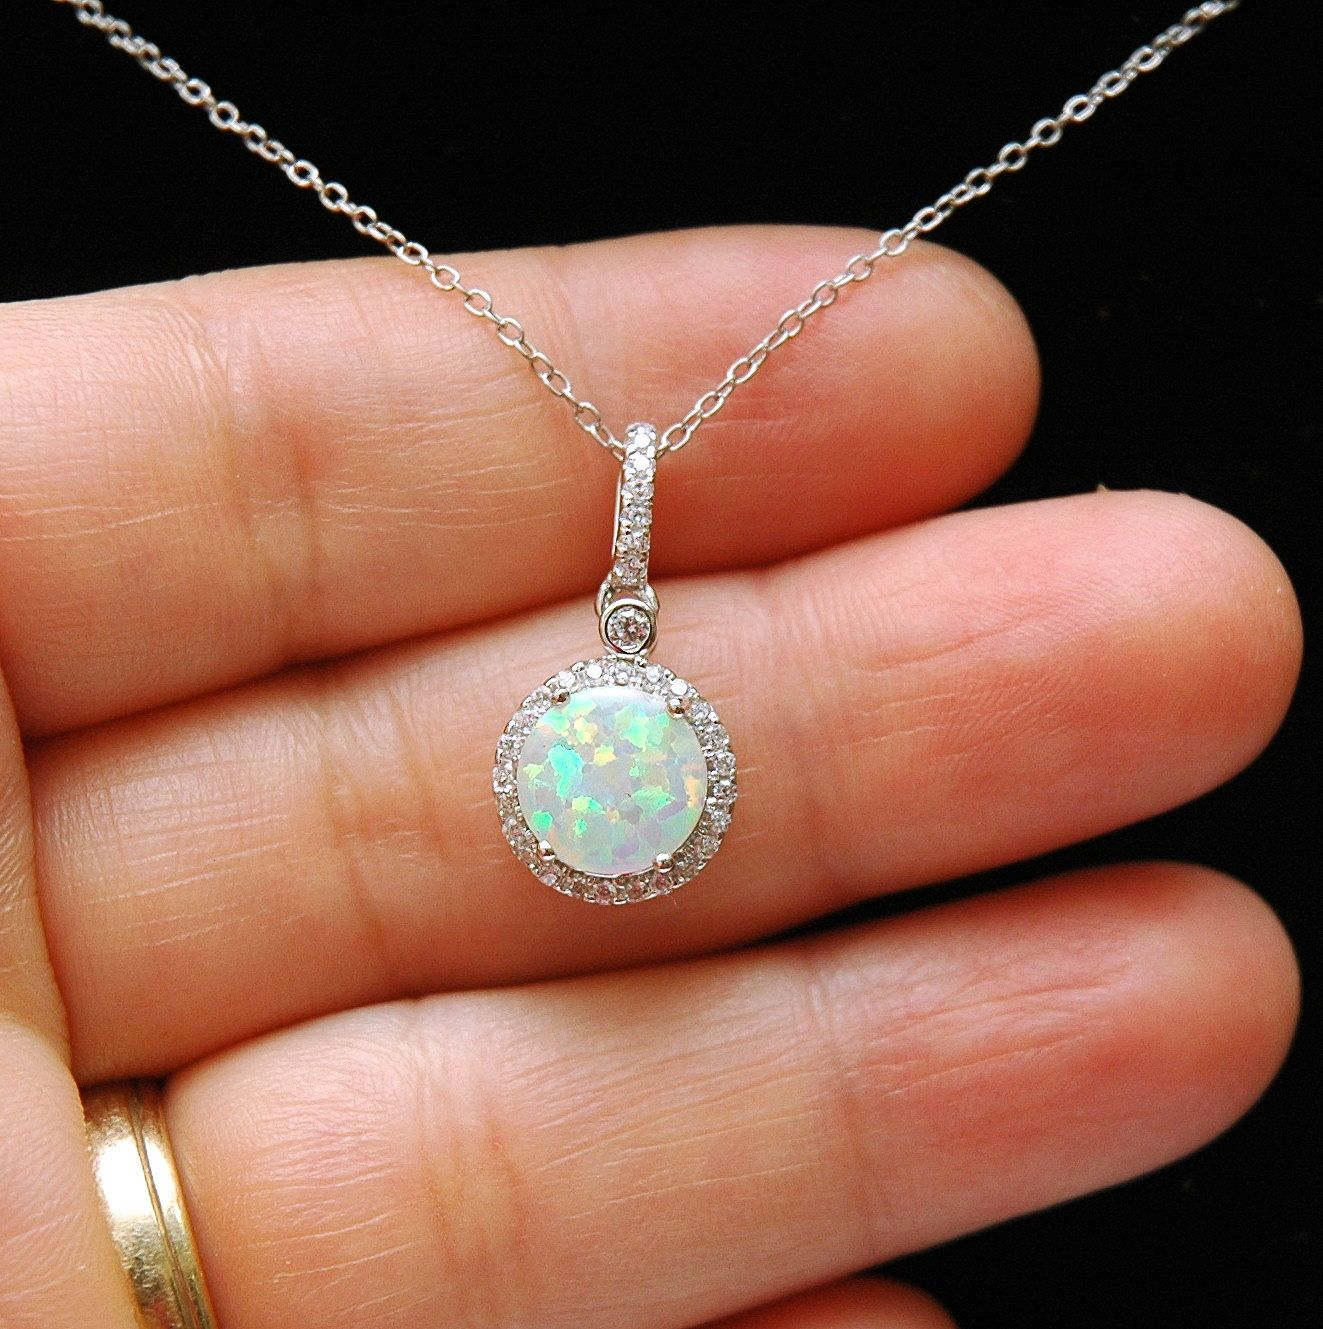 opal necklace october birthstone necklace white opal